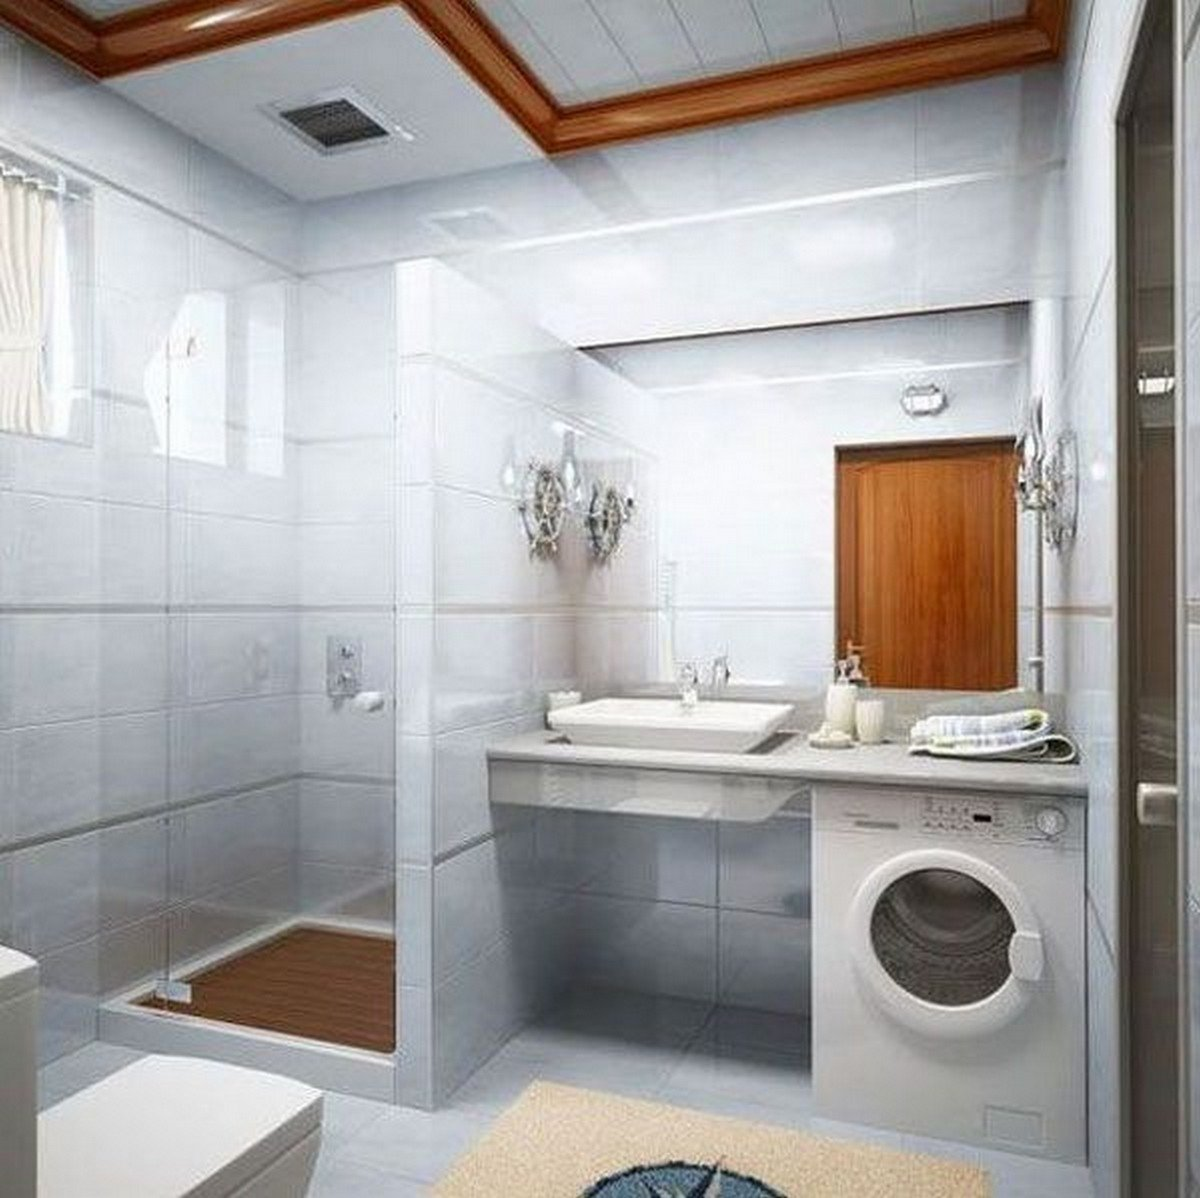 Whether youre looking for inspiration for your own bathroom remodel or simply enjoy seeing different toilet styles youll likely find many ideas that resonate